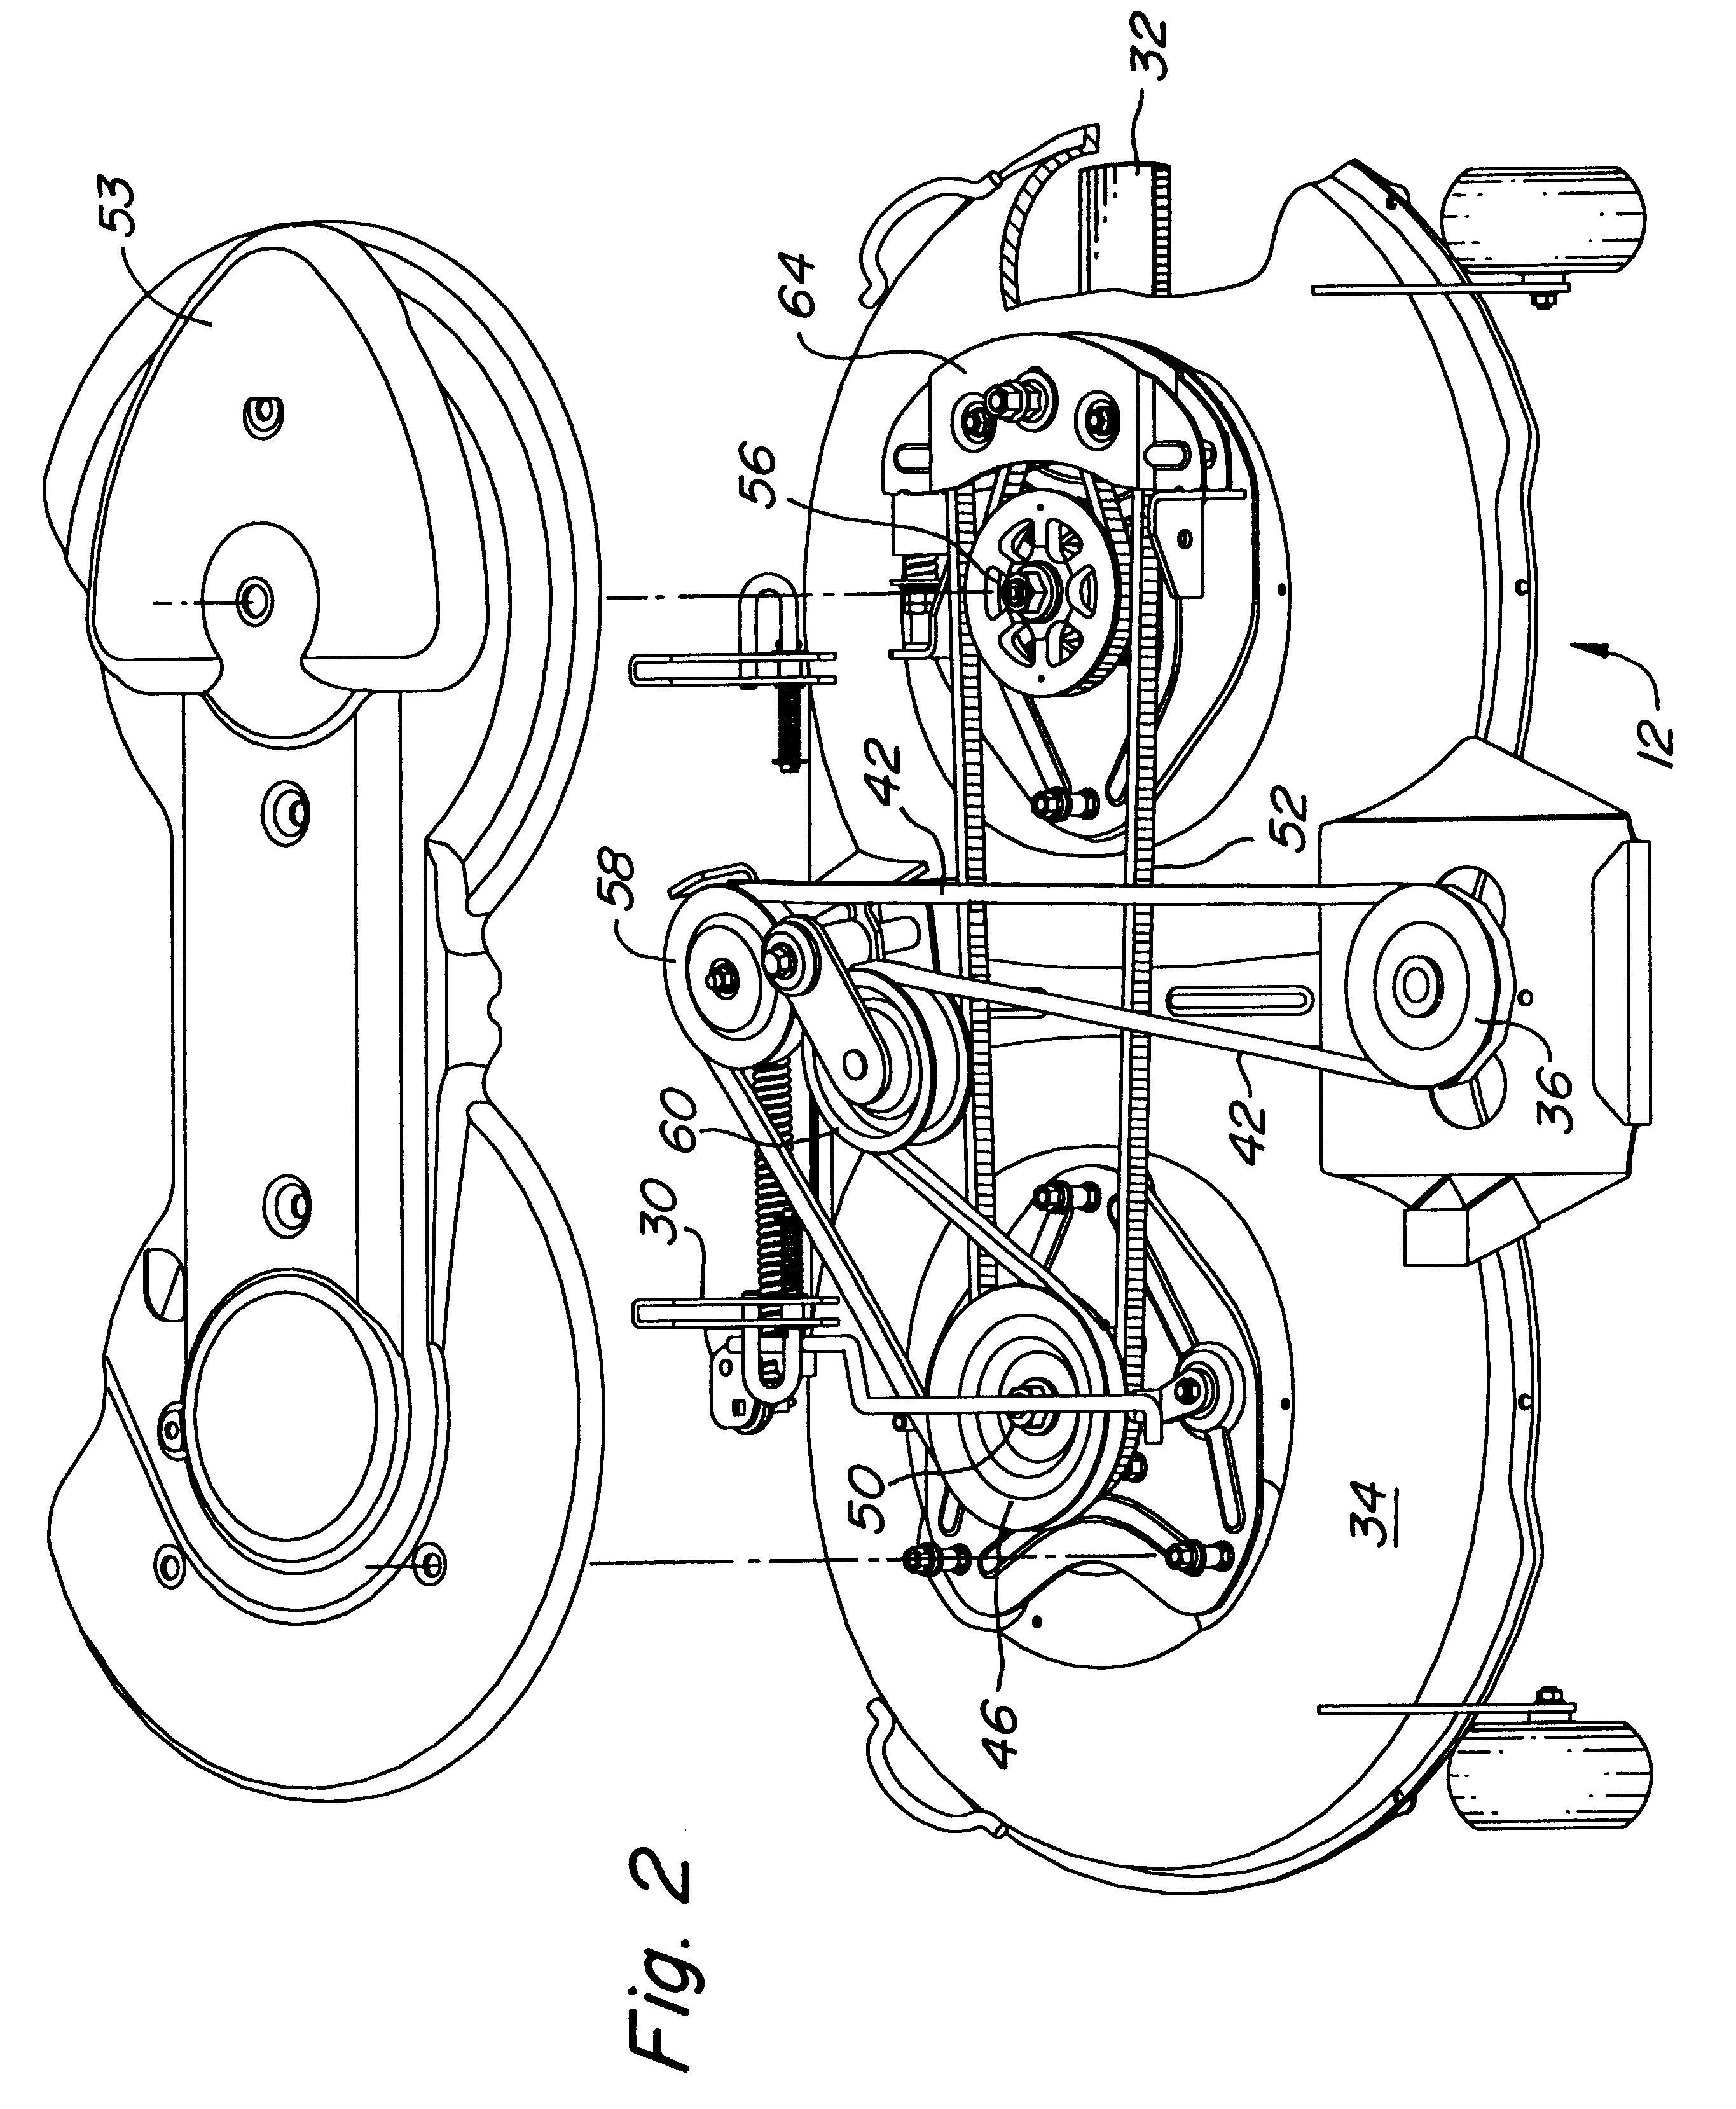 Patent US6176071 - Tensioning idler assembly for mower deck belt ...